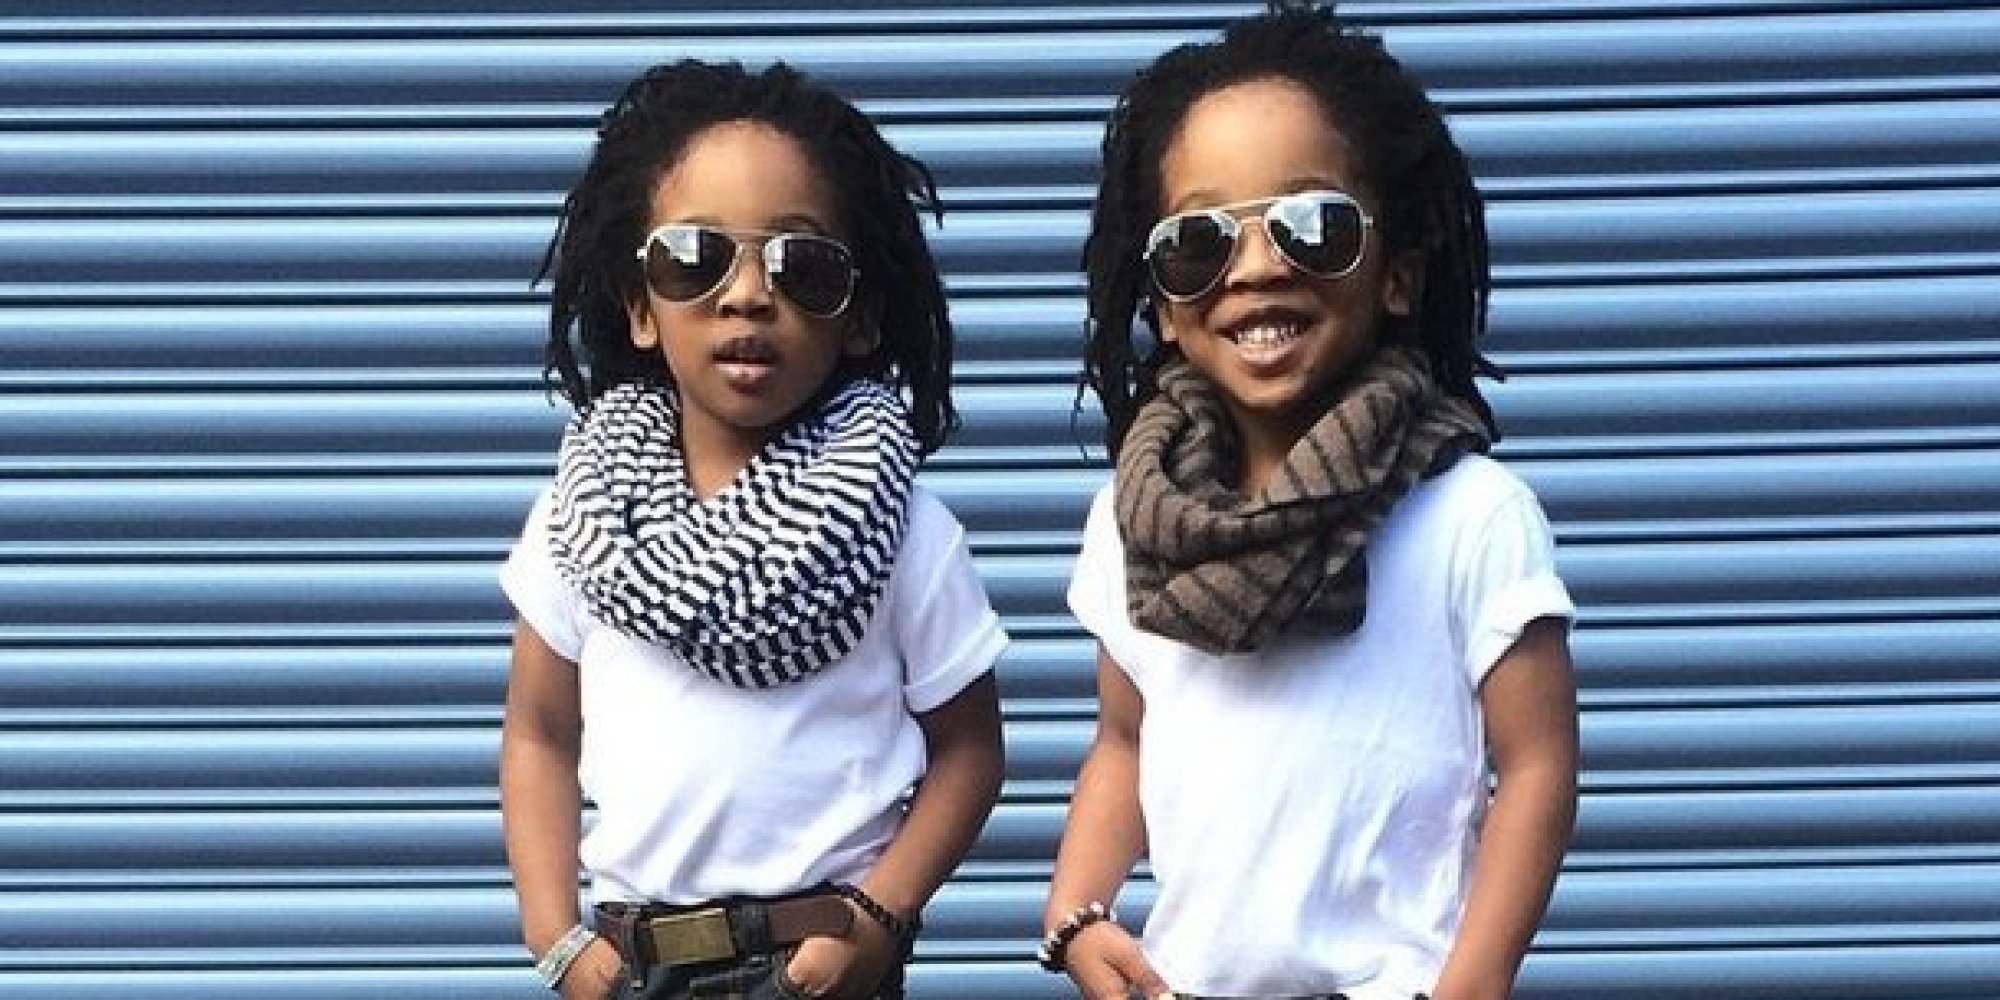 These Stylish Twins Have Way More Swagger Than You